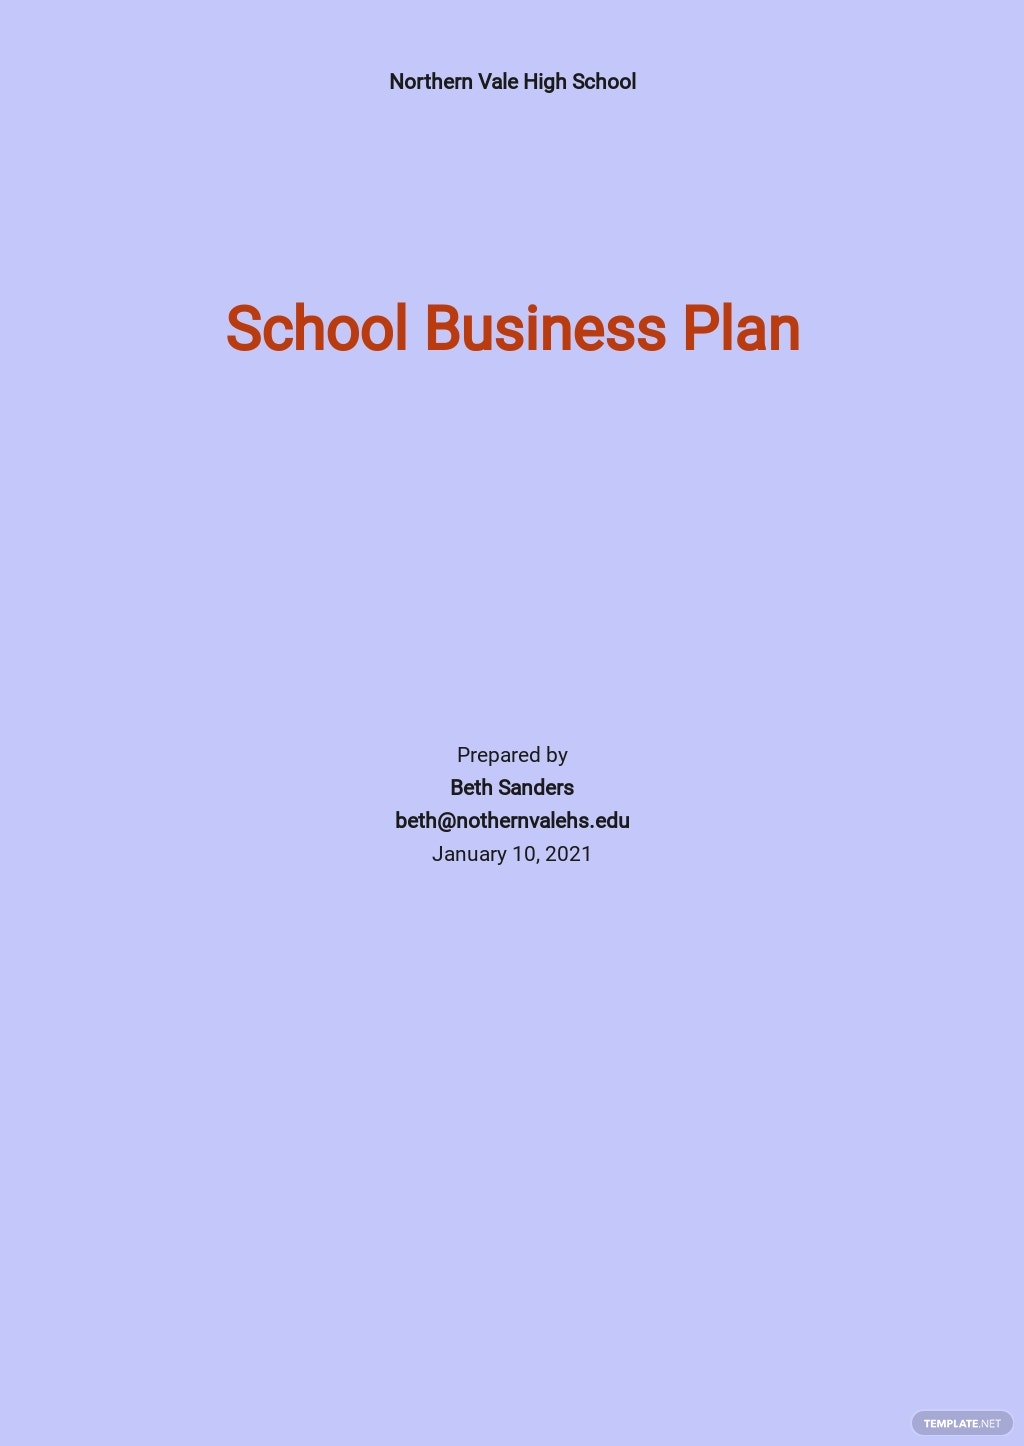 Basic School Business Plan Template